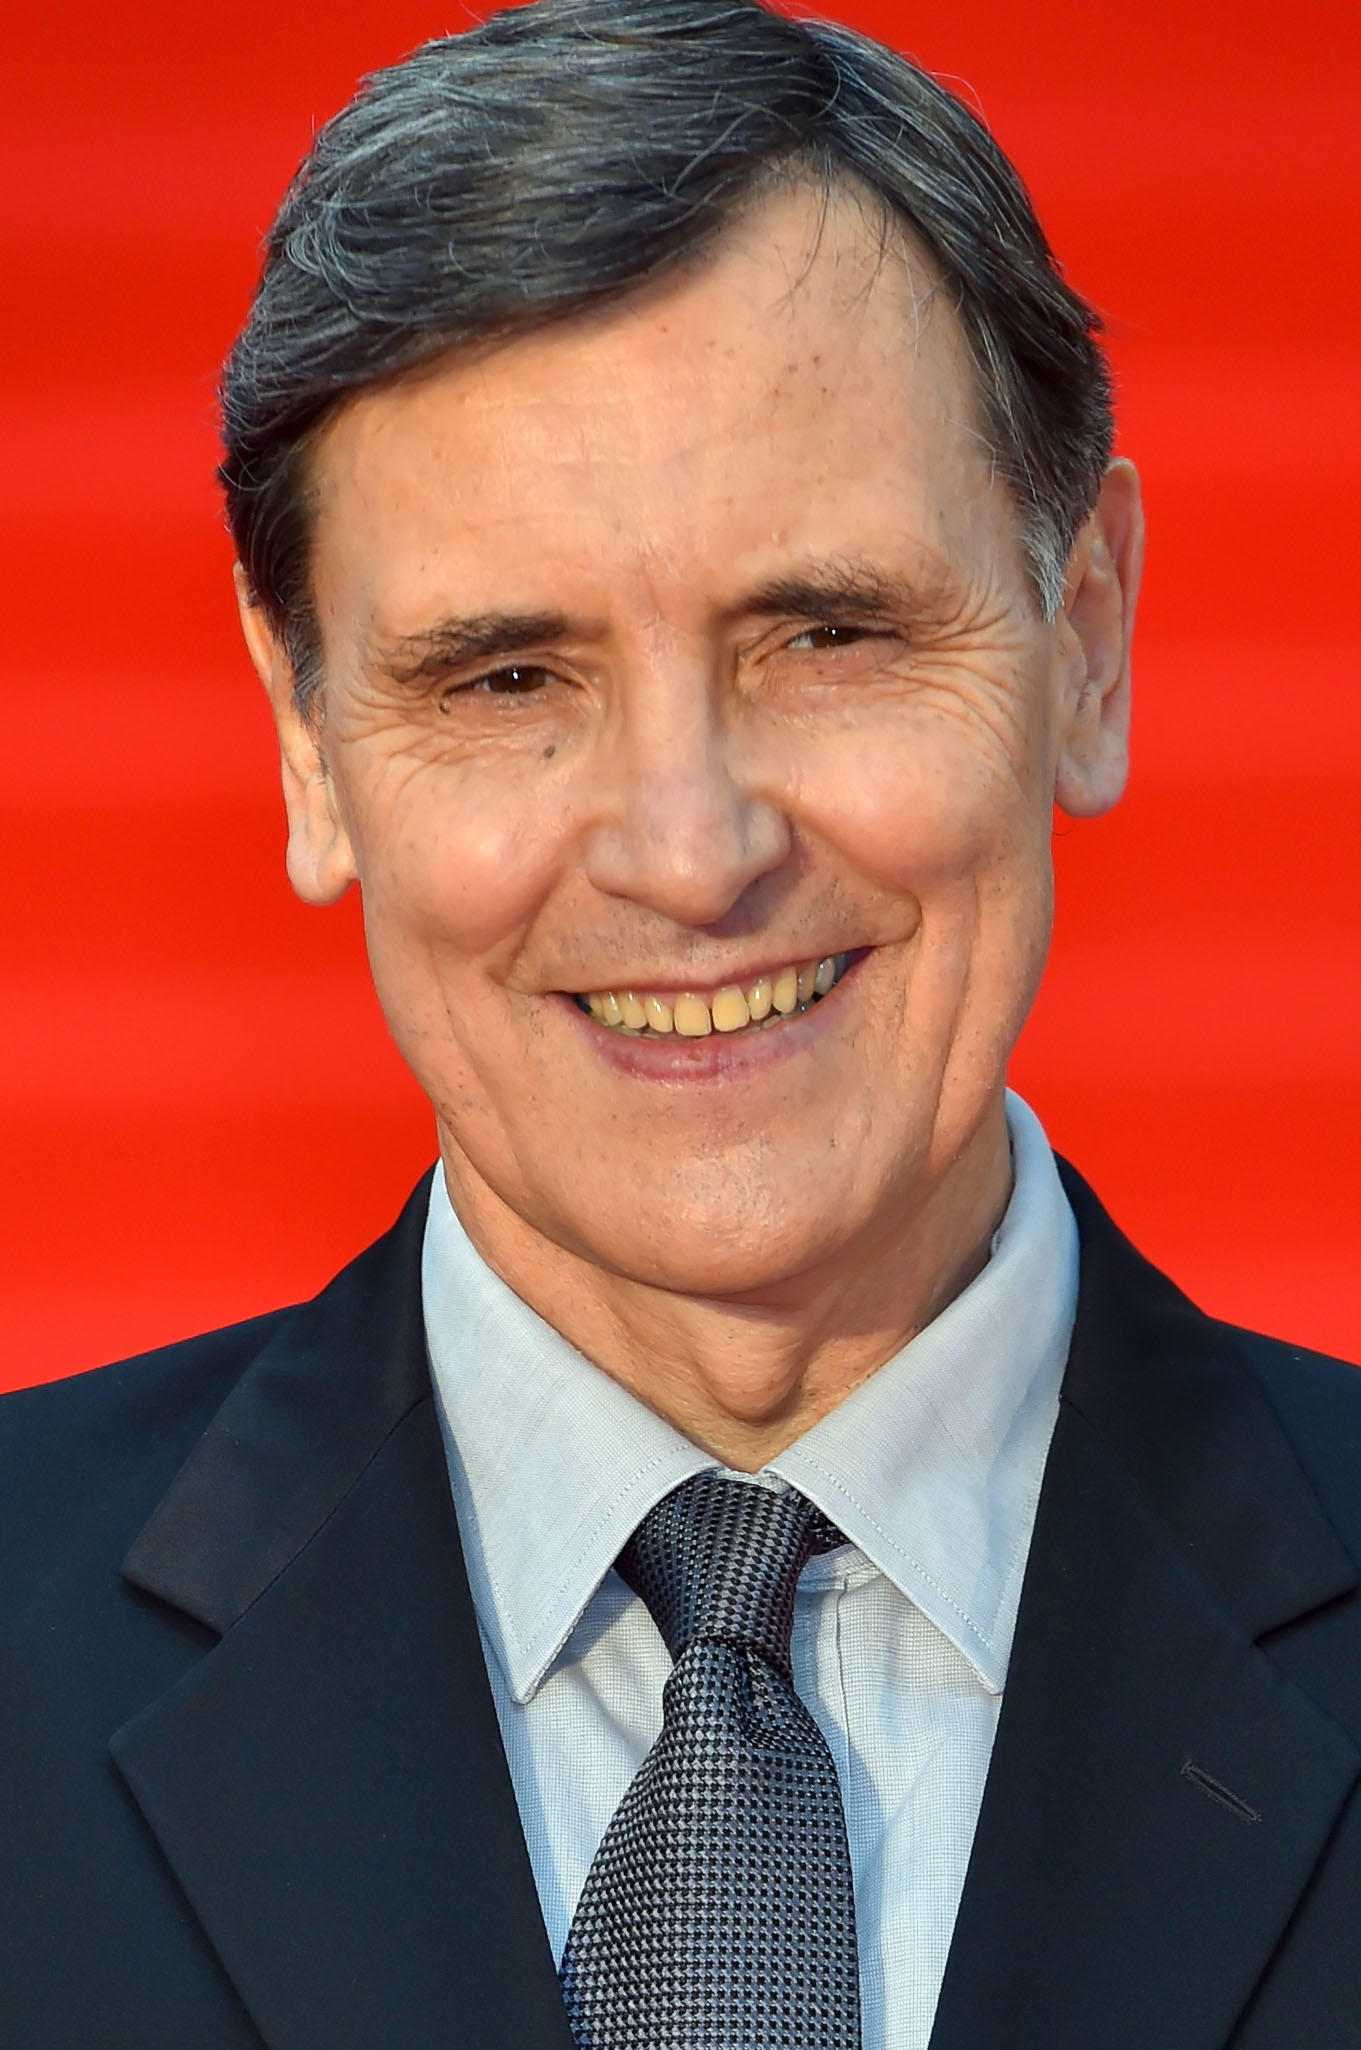 Jacques Cluzaud during the Tokyo International Film Festival 2015.